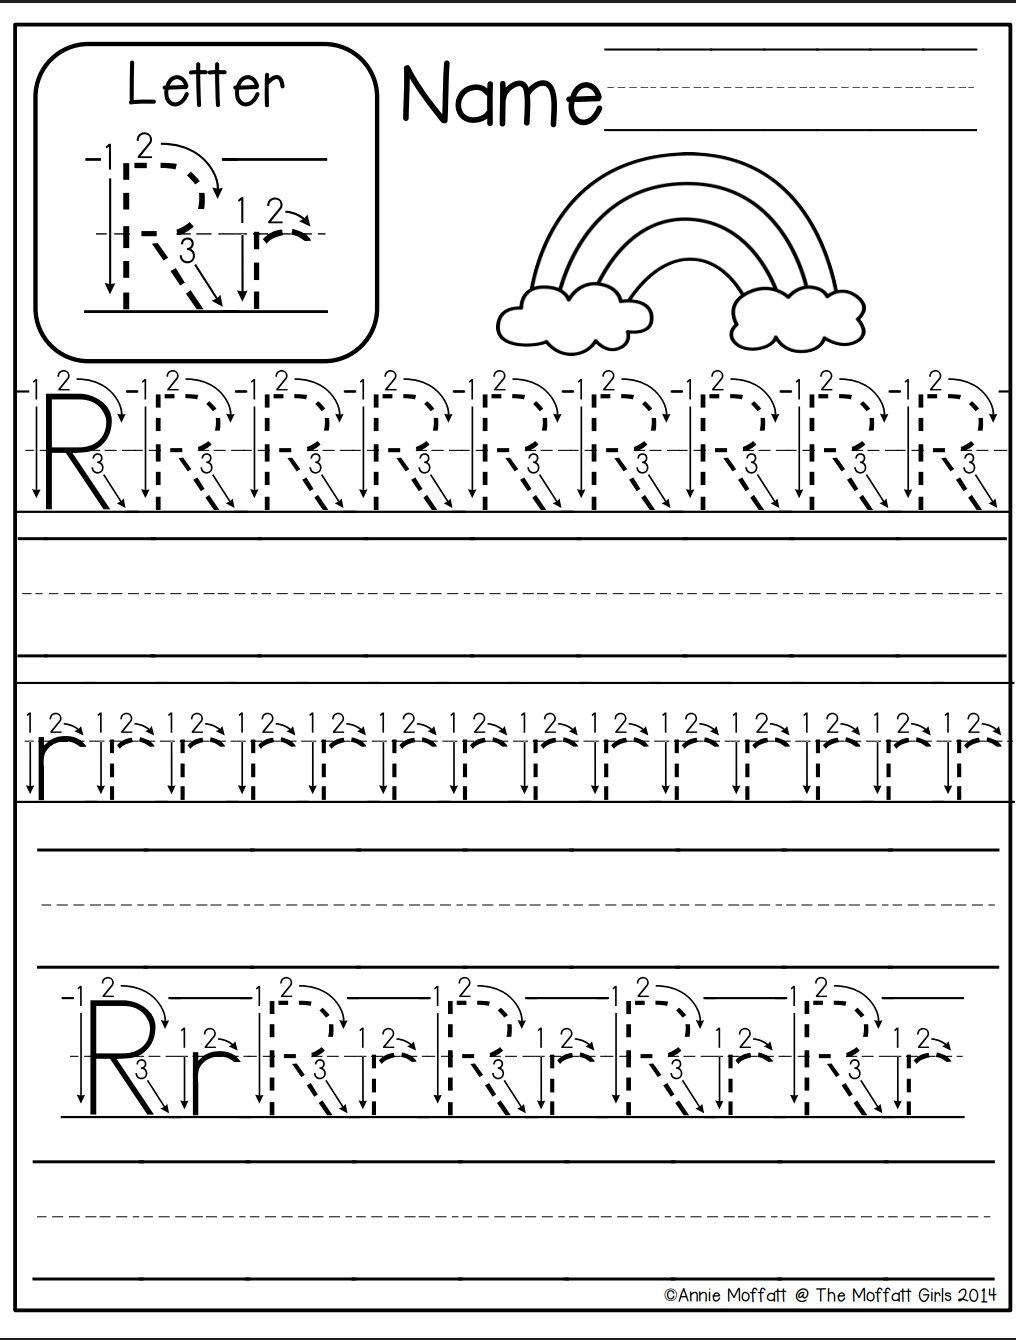 Letter R Worksheet | Alphabet Worksheets Kindergarten pertaining to Letter Tracing R